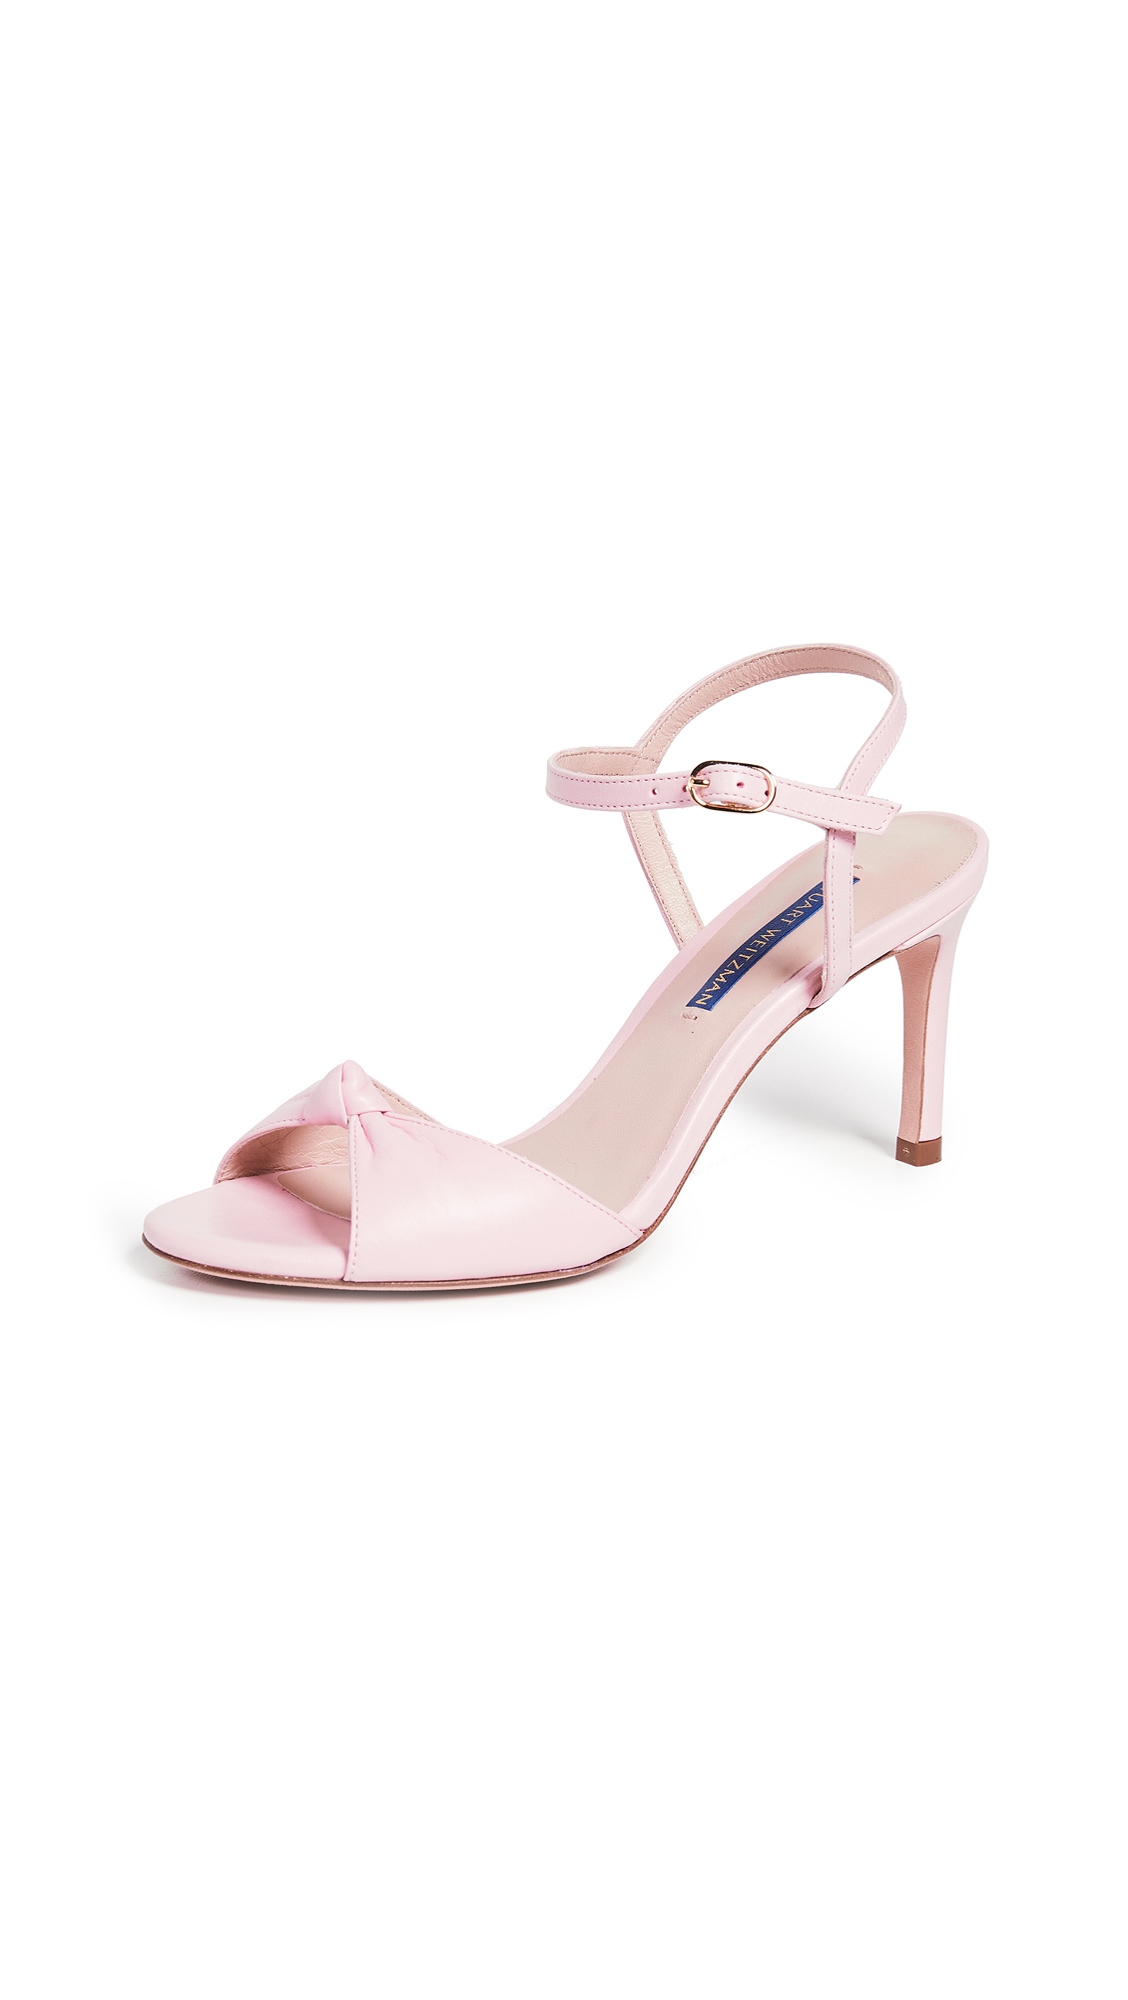 Stuart Weitzman Gloria 80mm Sandals - Nymph